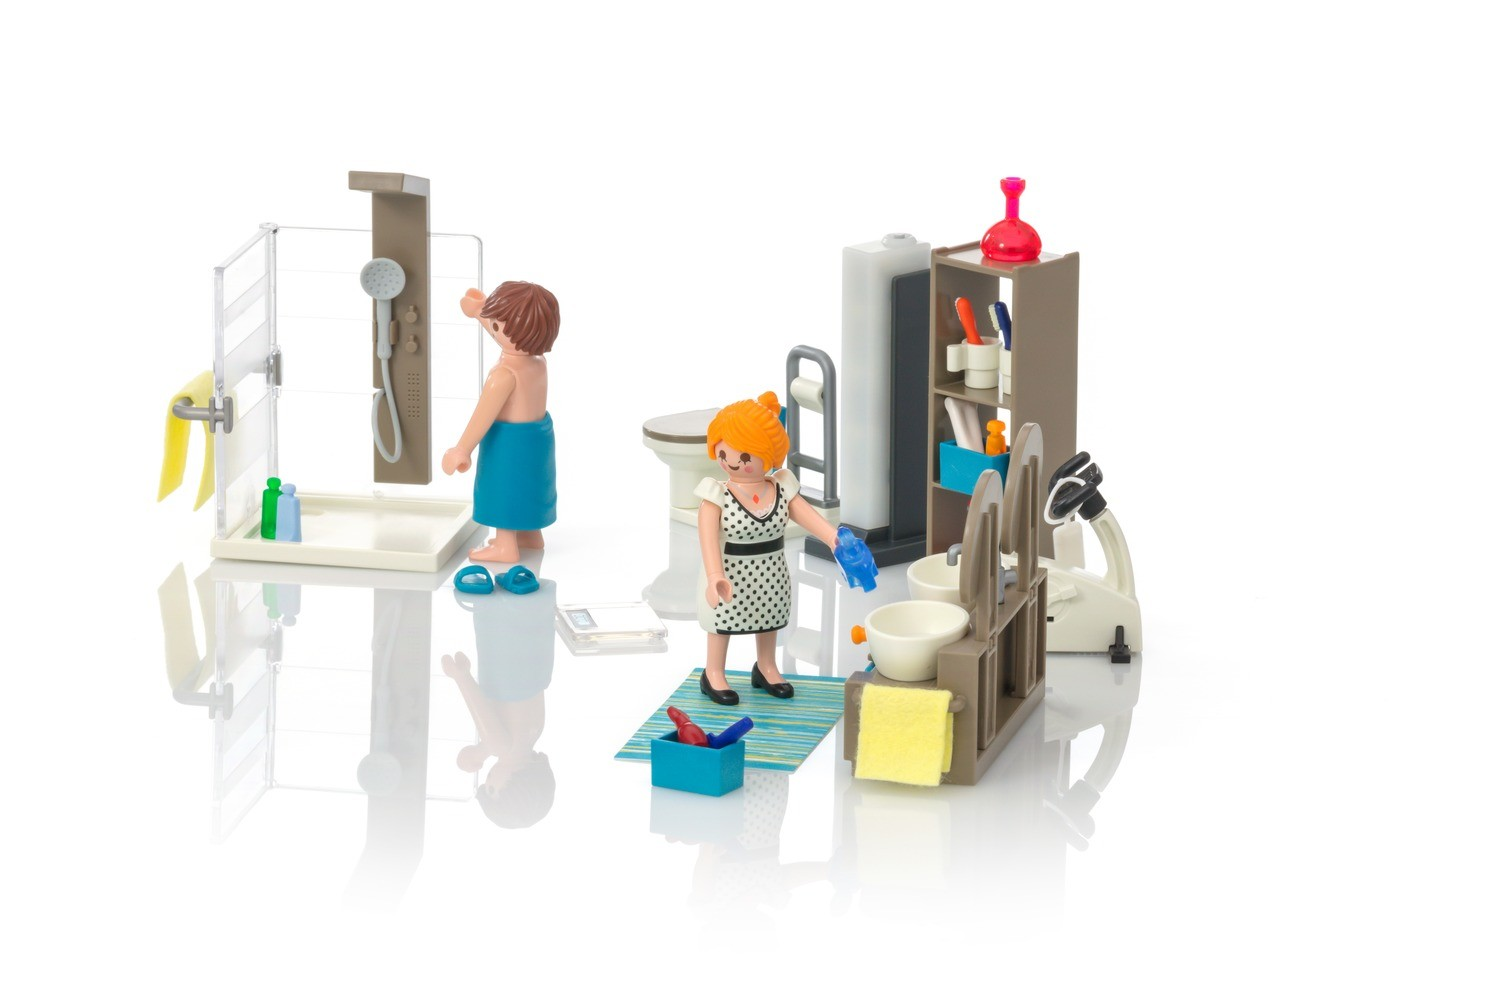 Bathroom - Playmobil sets 9268